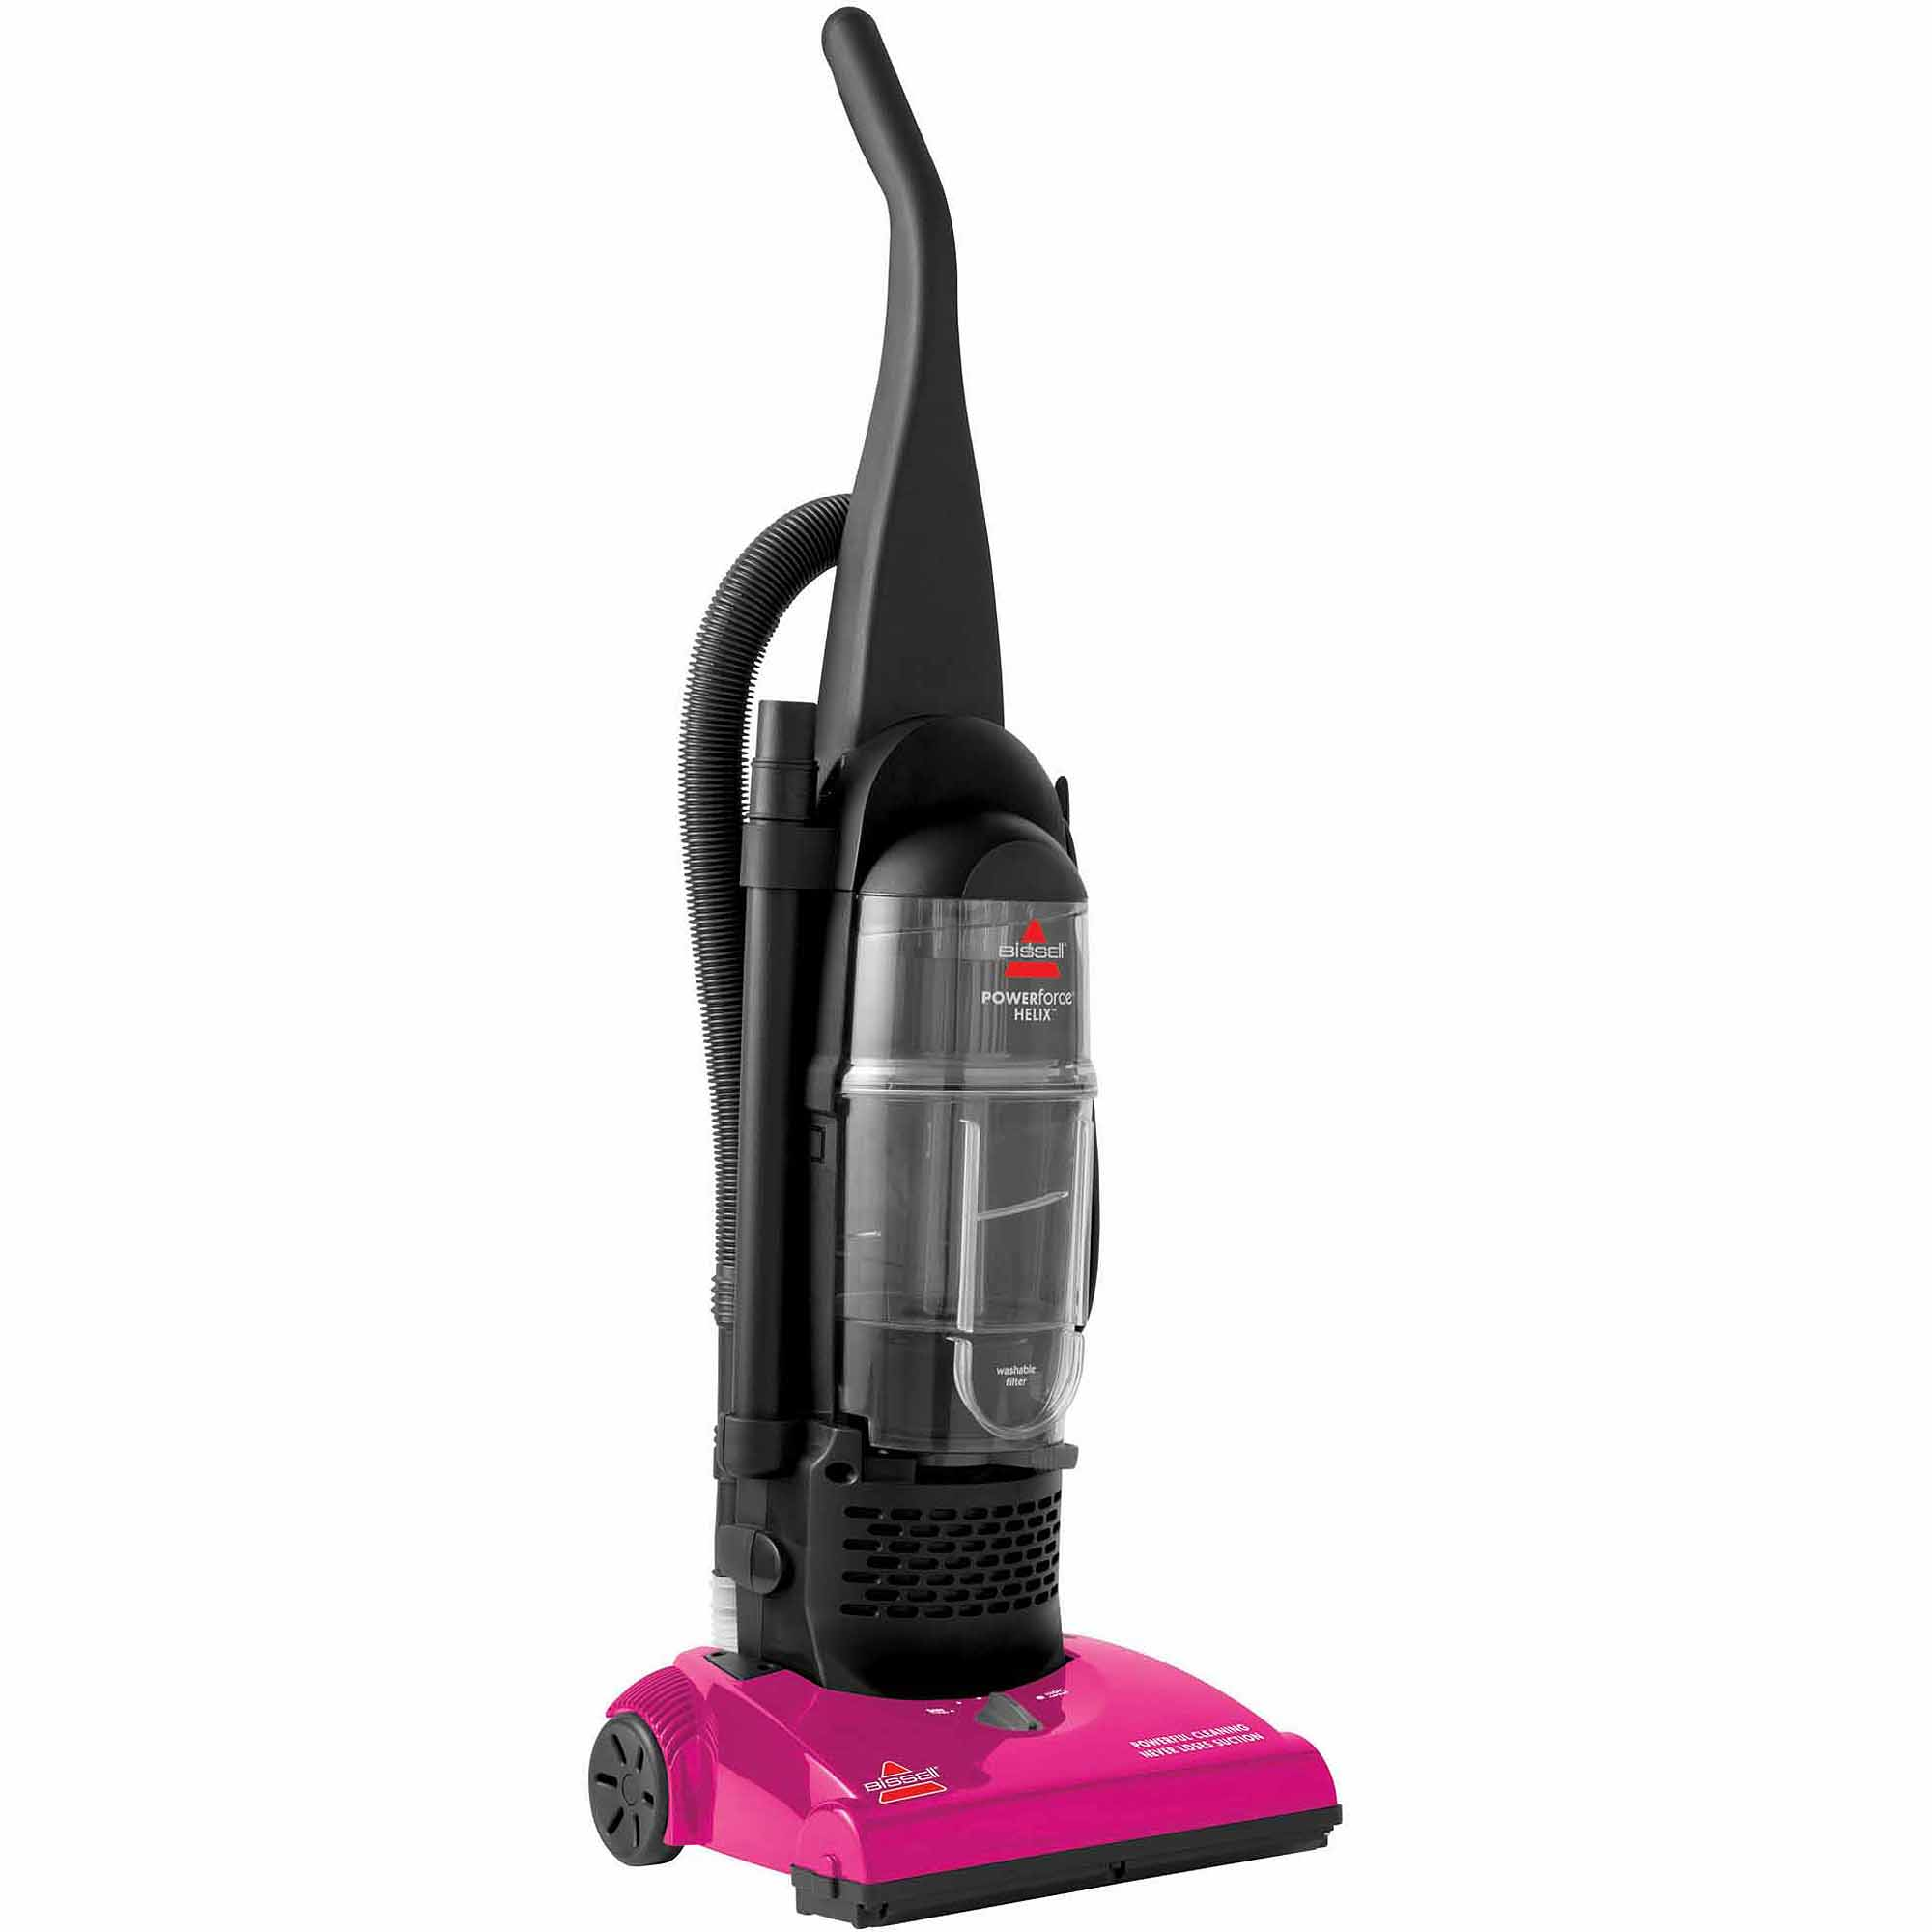 Walmart offers the Bissell SpotClean ProHeat Pet Portable Carpet Cleaner for $88 with free shipping. That's tied with last month's mention, $10 off, and the lowest price we could find. That's tied with last month's mention, $10 off, and the lowest price we could find.